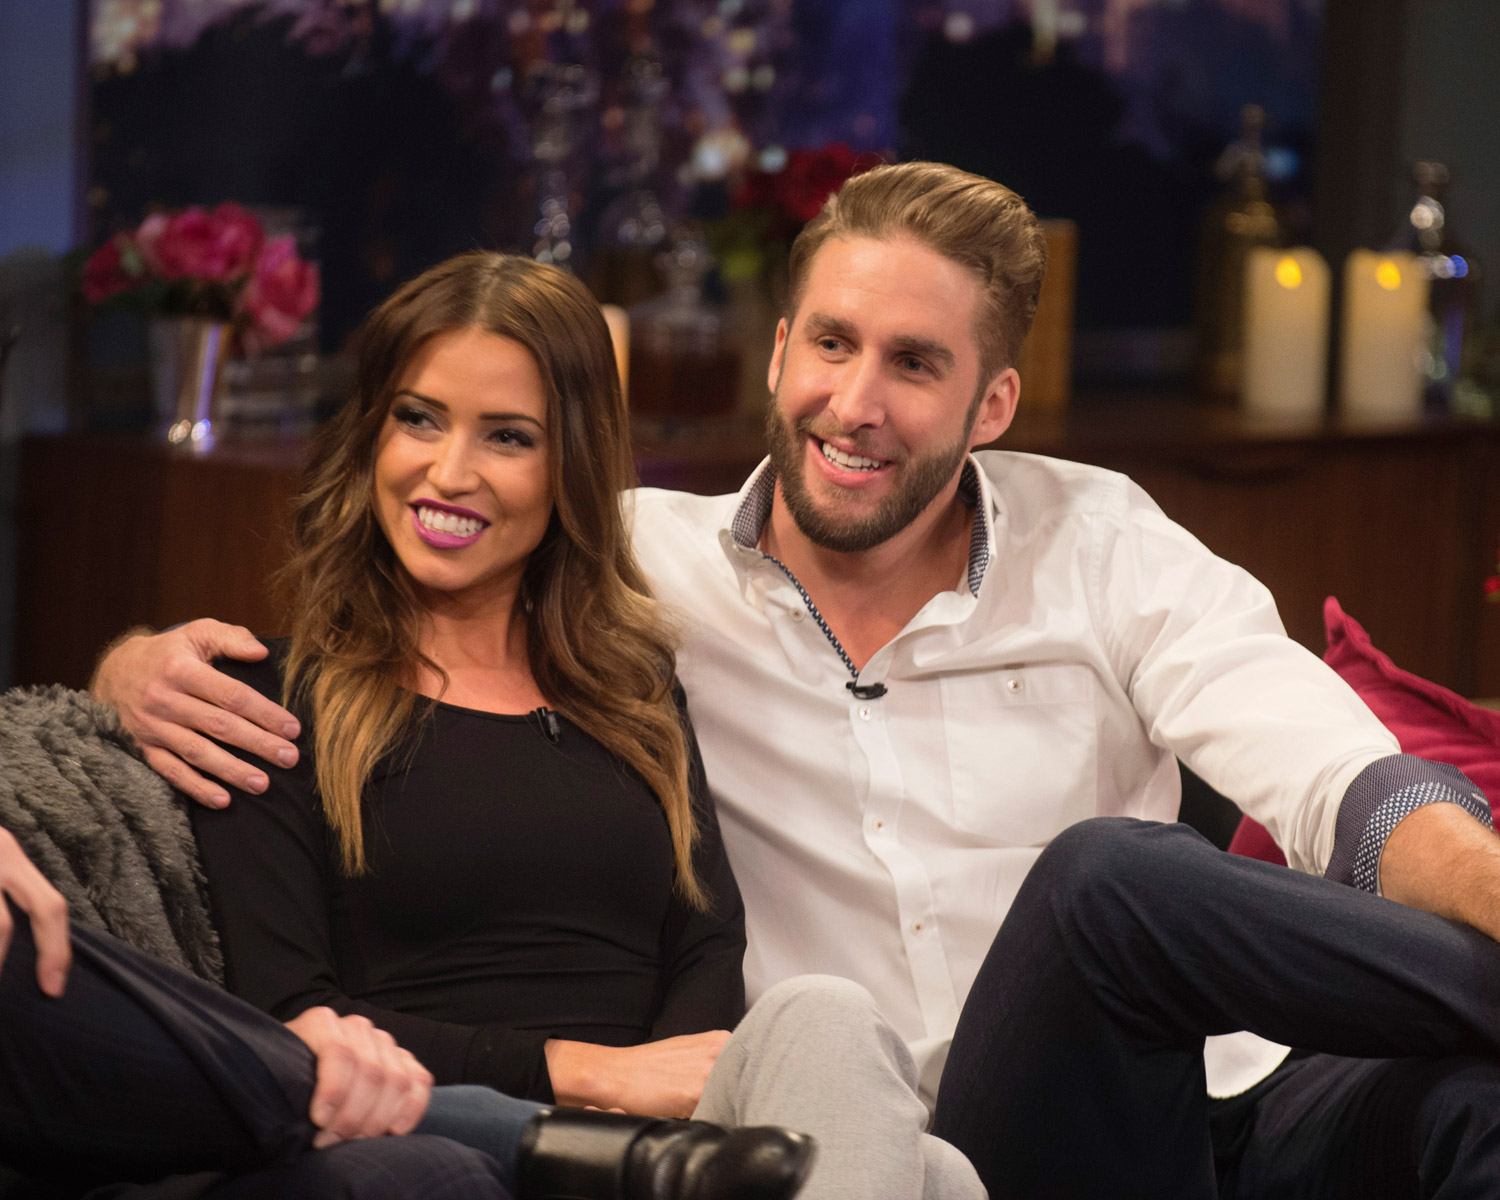 Shawn booth dating new girl